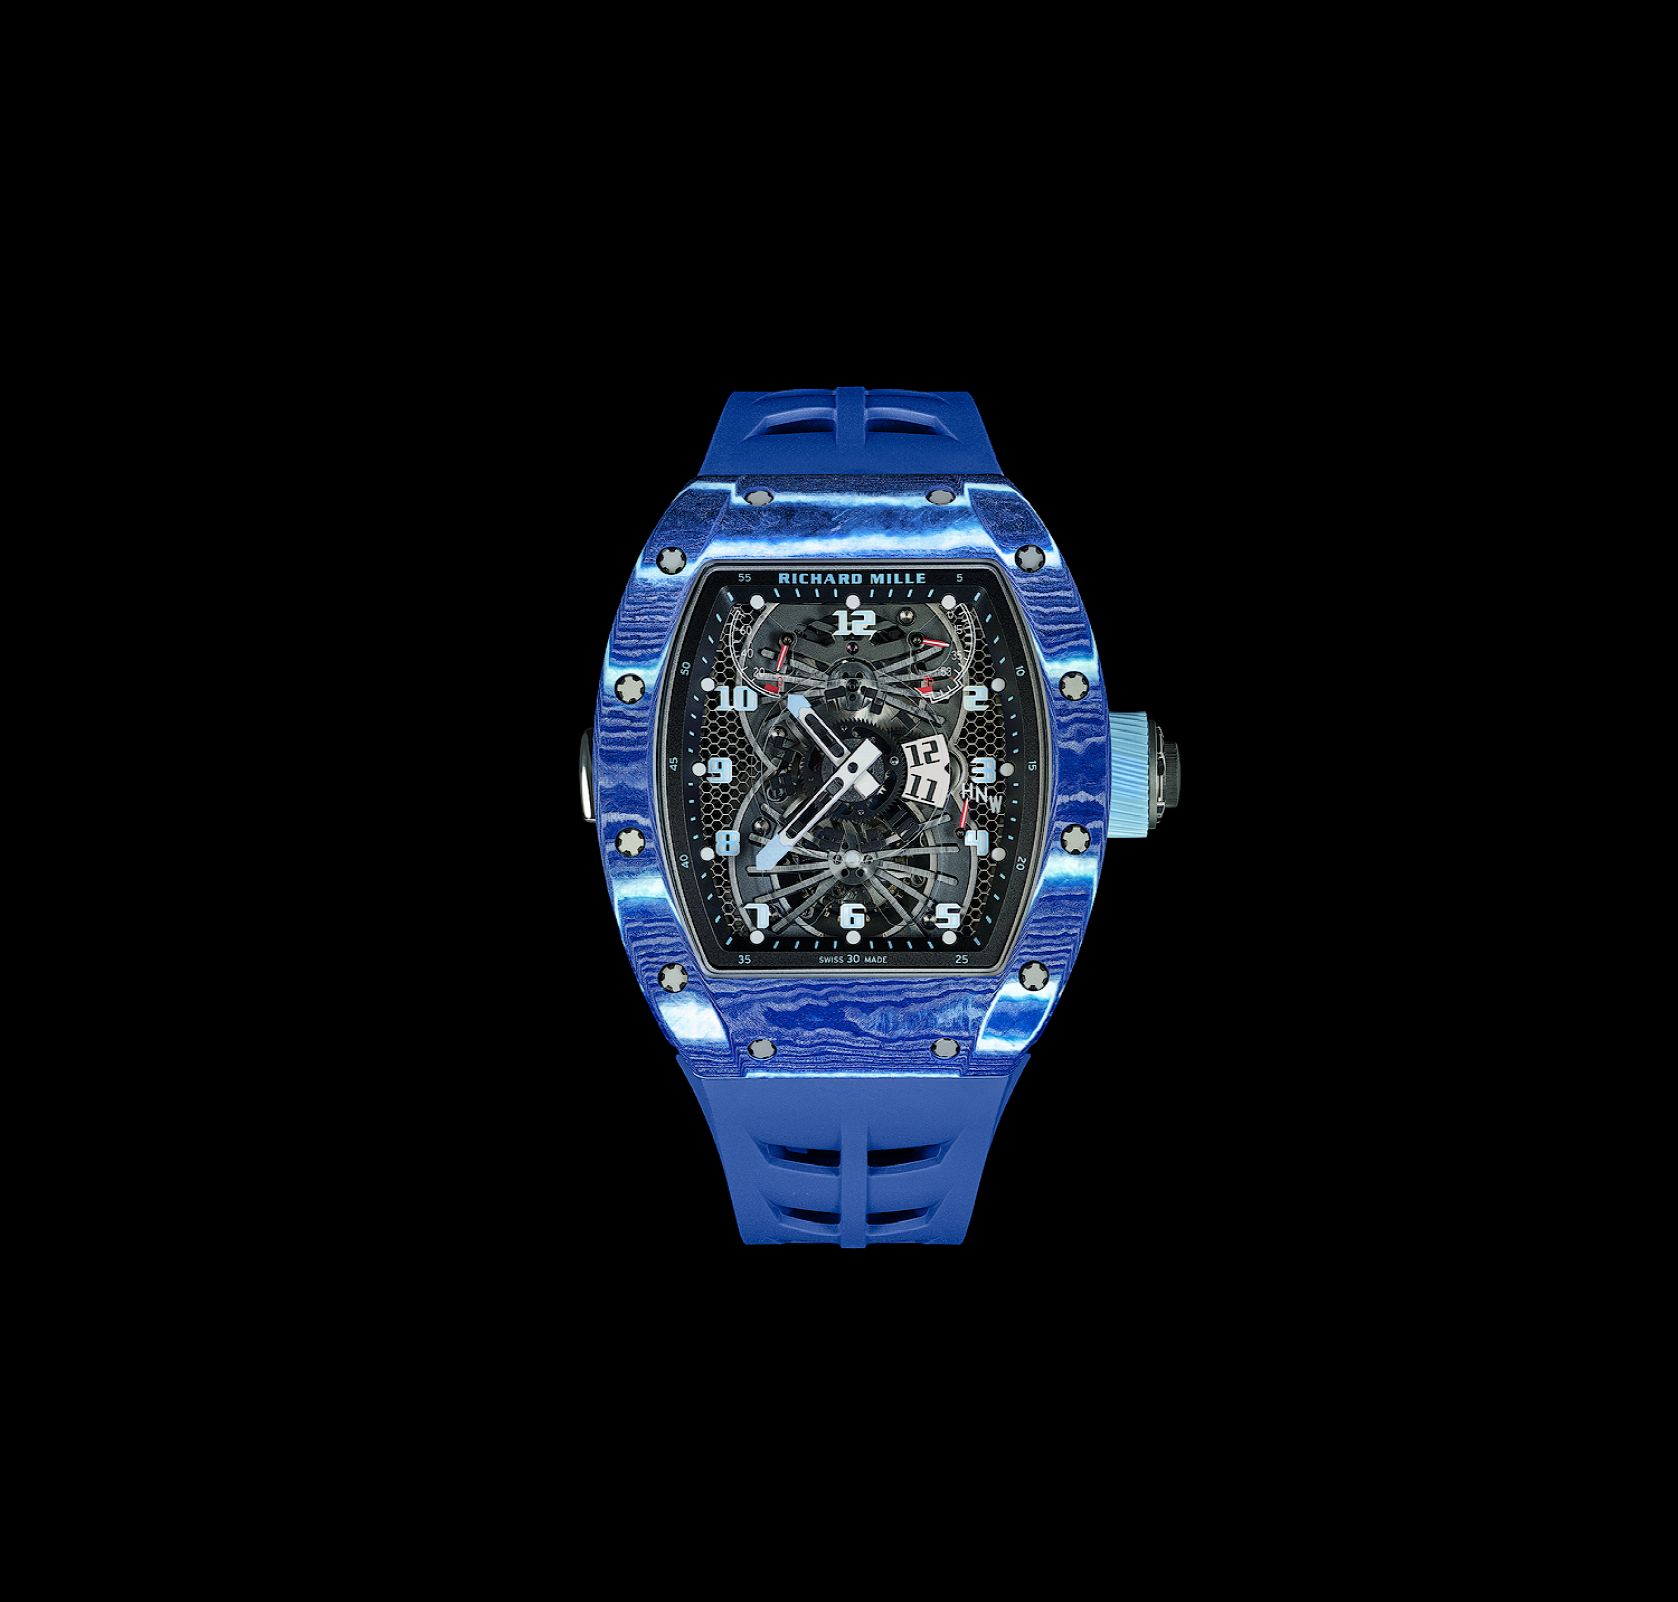 Richard Mille/Blue